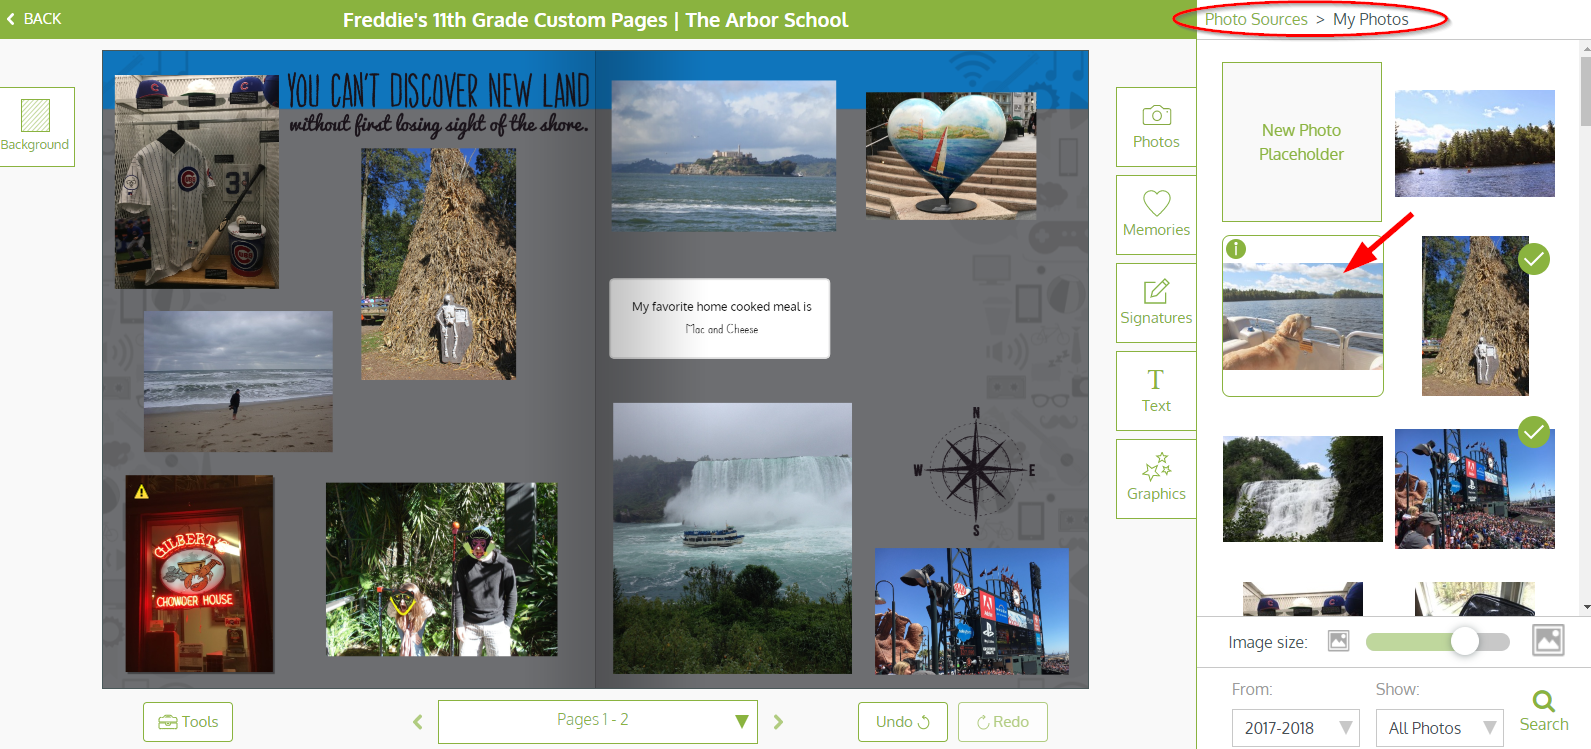 Custom_Pages_-_Add_Photos_-_Select_Photo_to_Add_to_Pages_.png